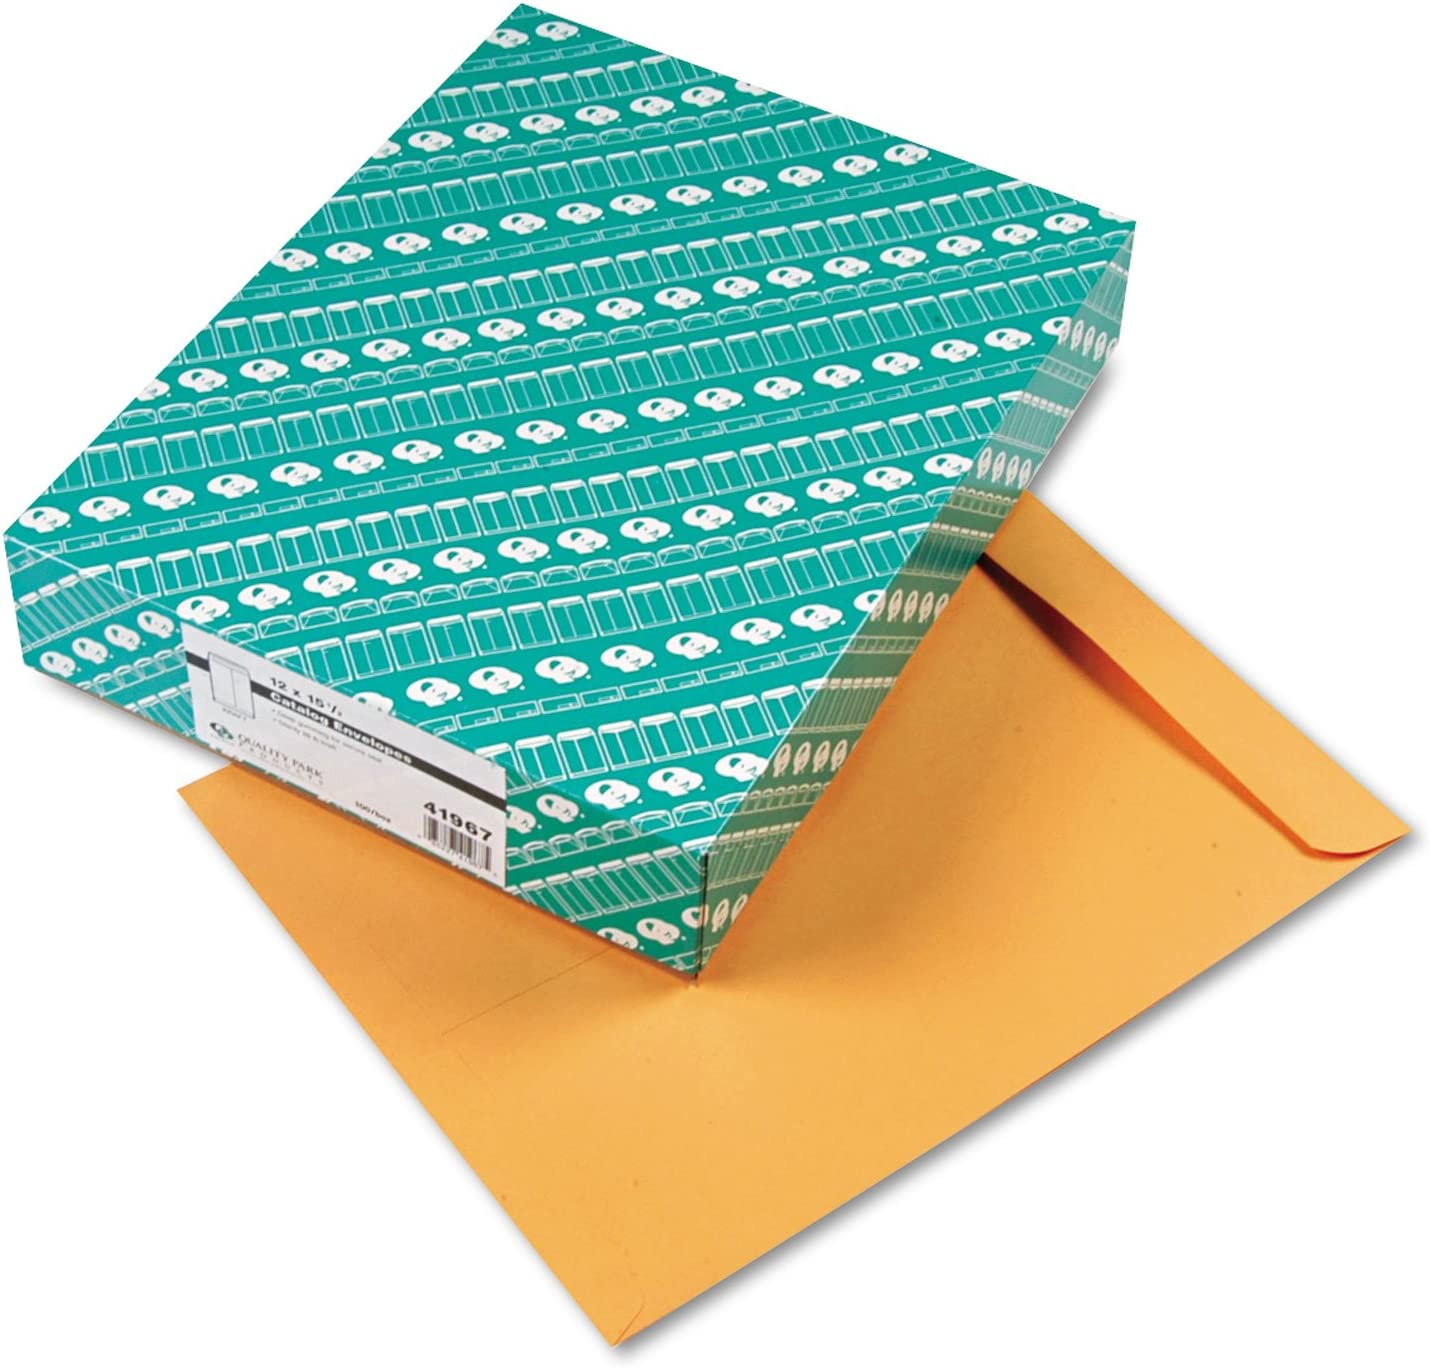 Quality Park 41967 Catalog Envelope x15-1 New Orleans Mall Plain 12-Inch New product!! 28Lb